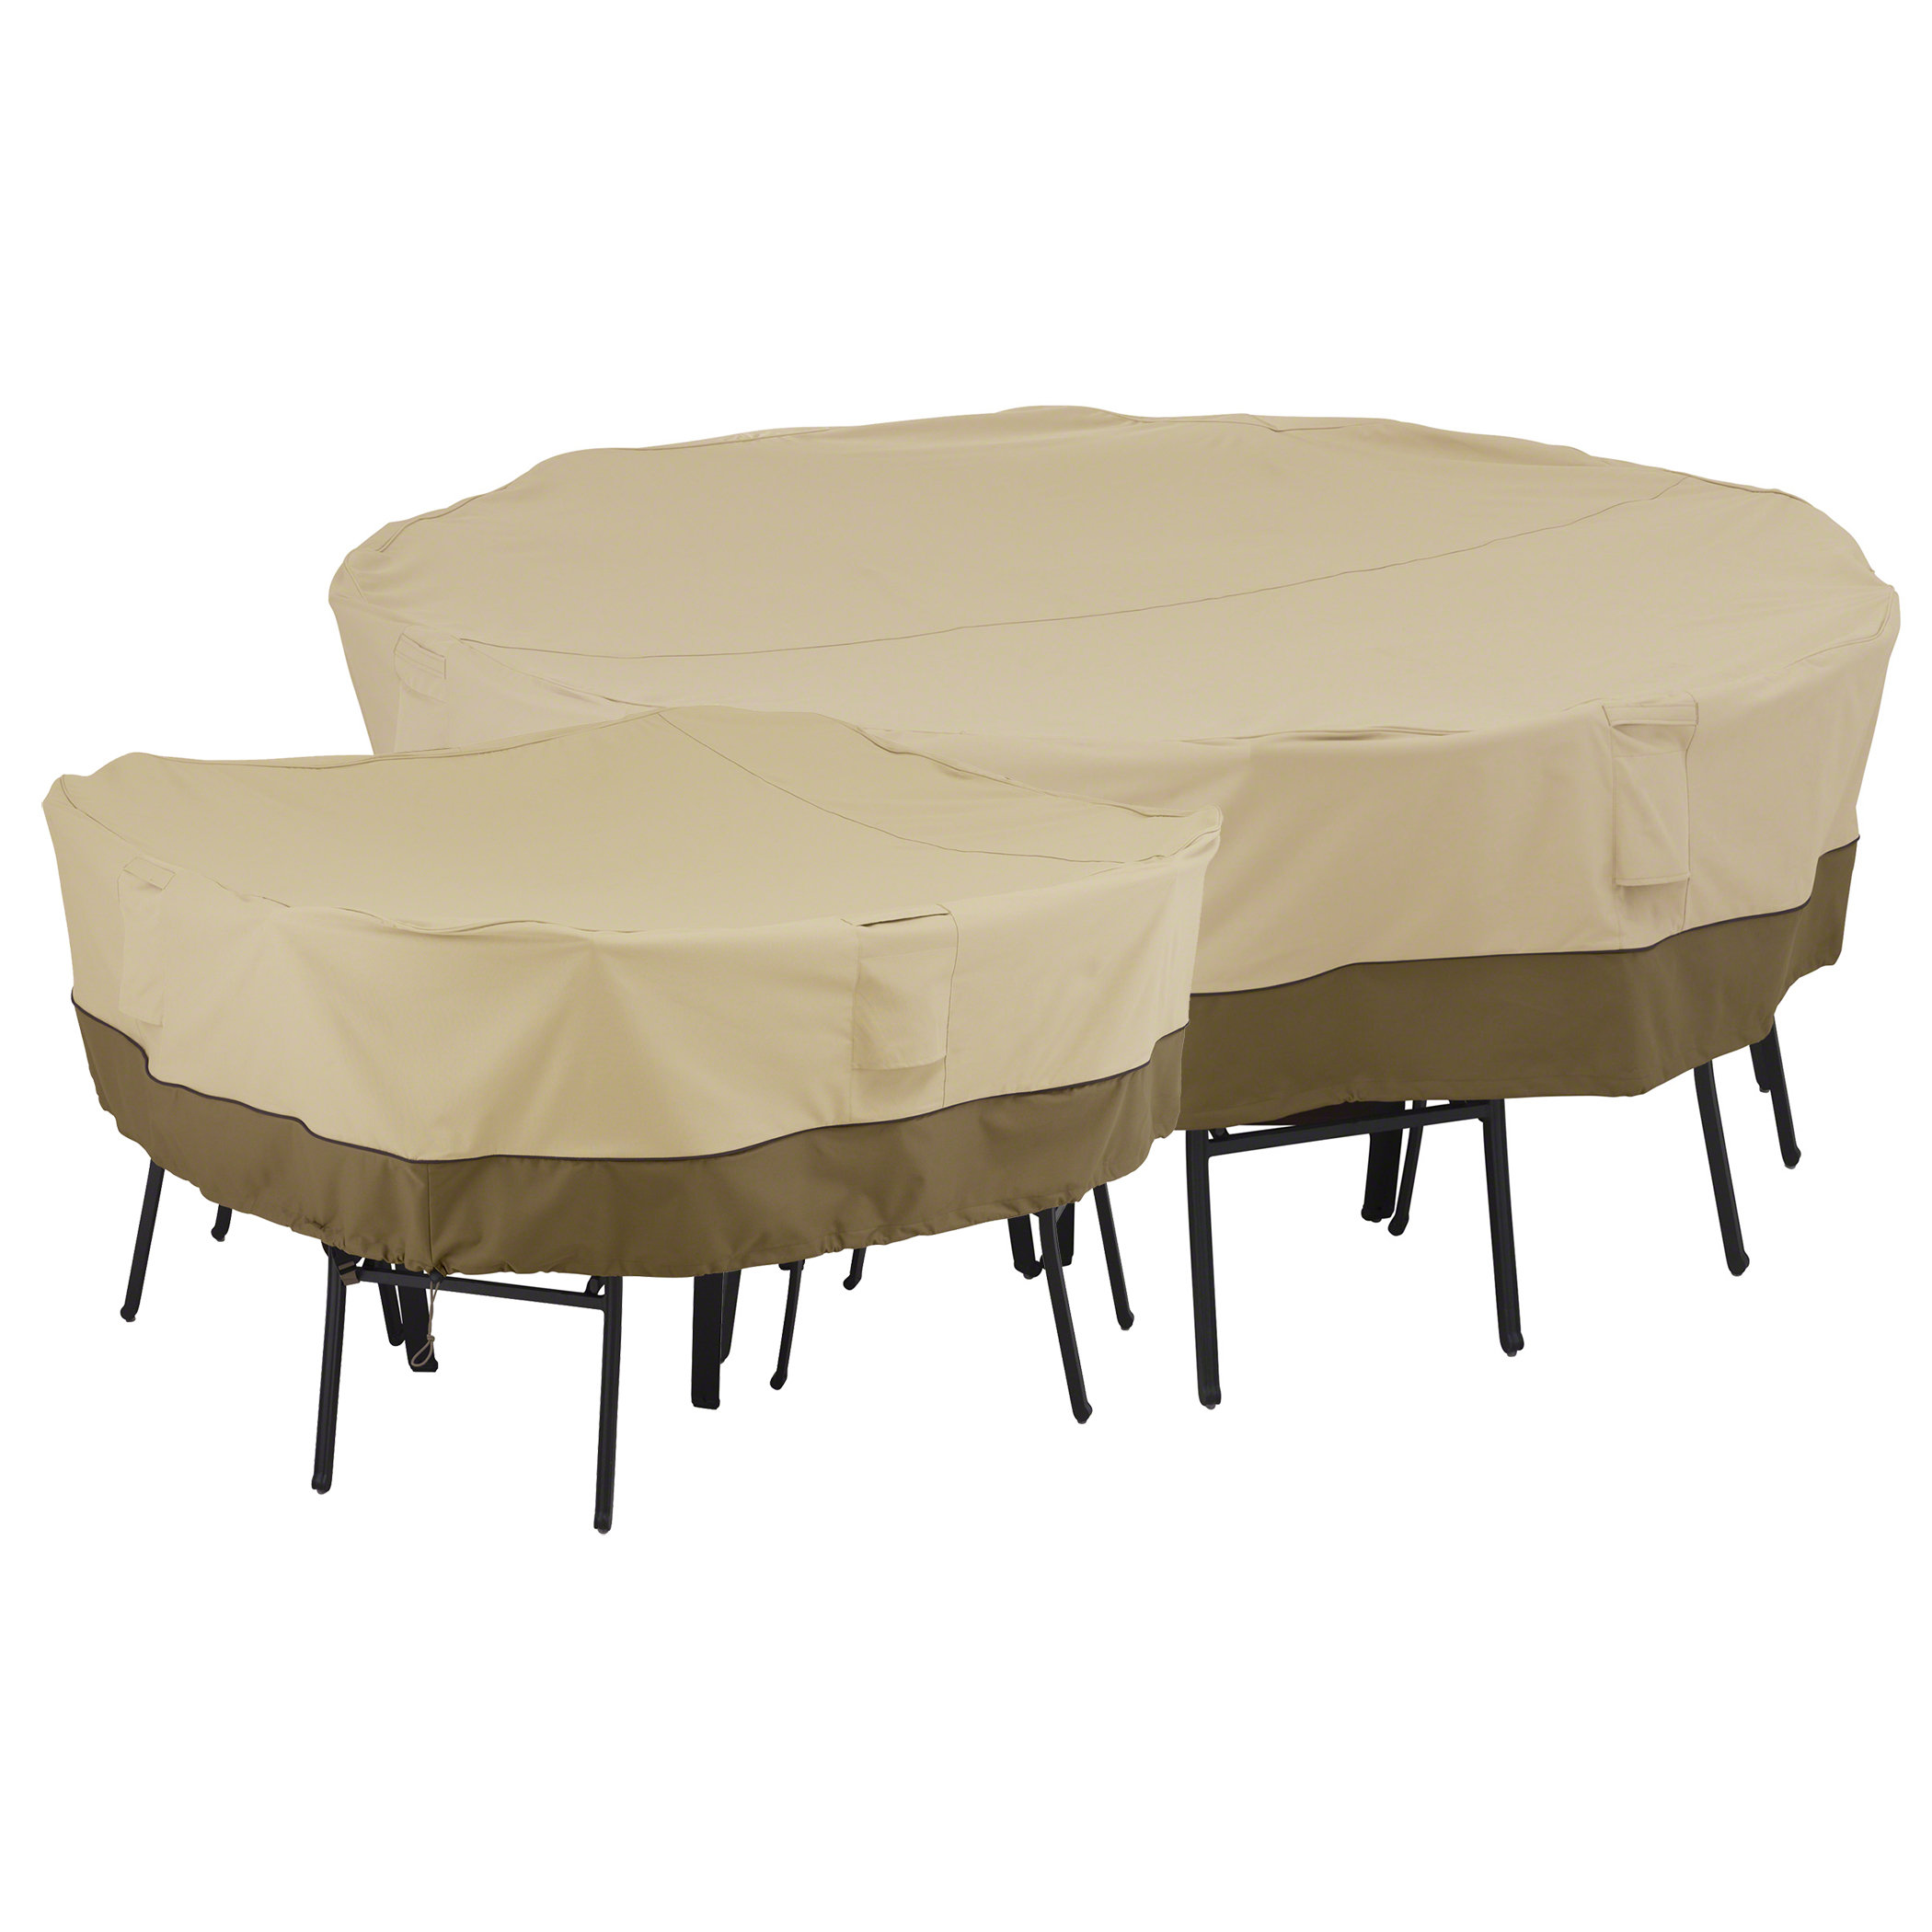 Amazoncom classic accessories 55 228 011501 00 veranda for Patio furniture covers for square tables